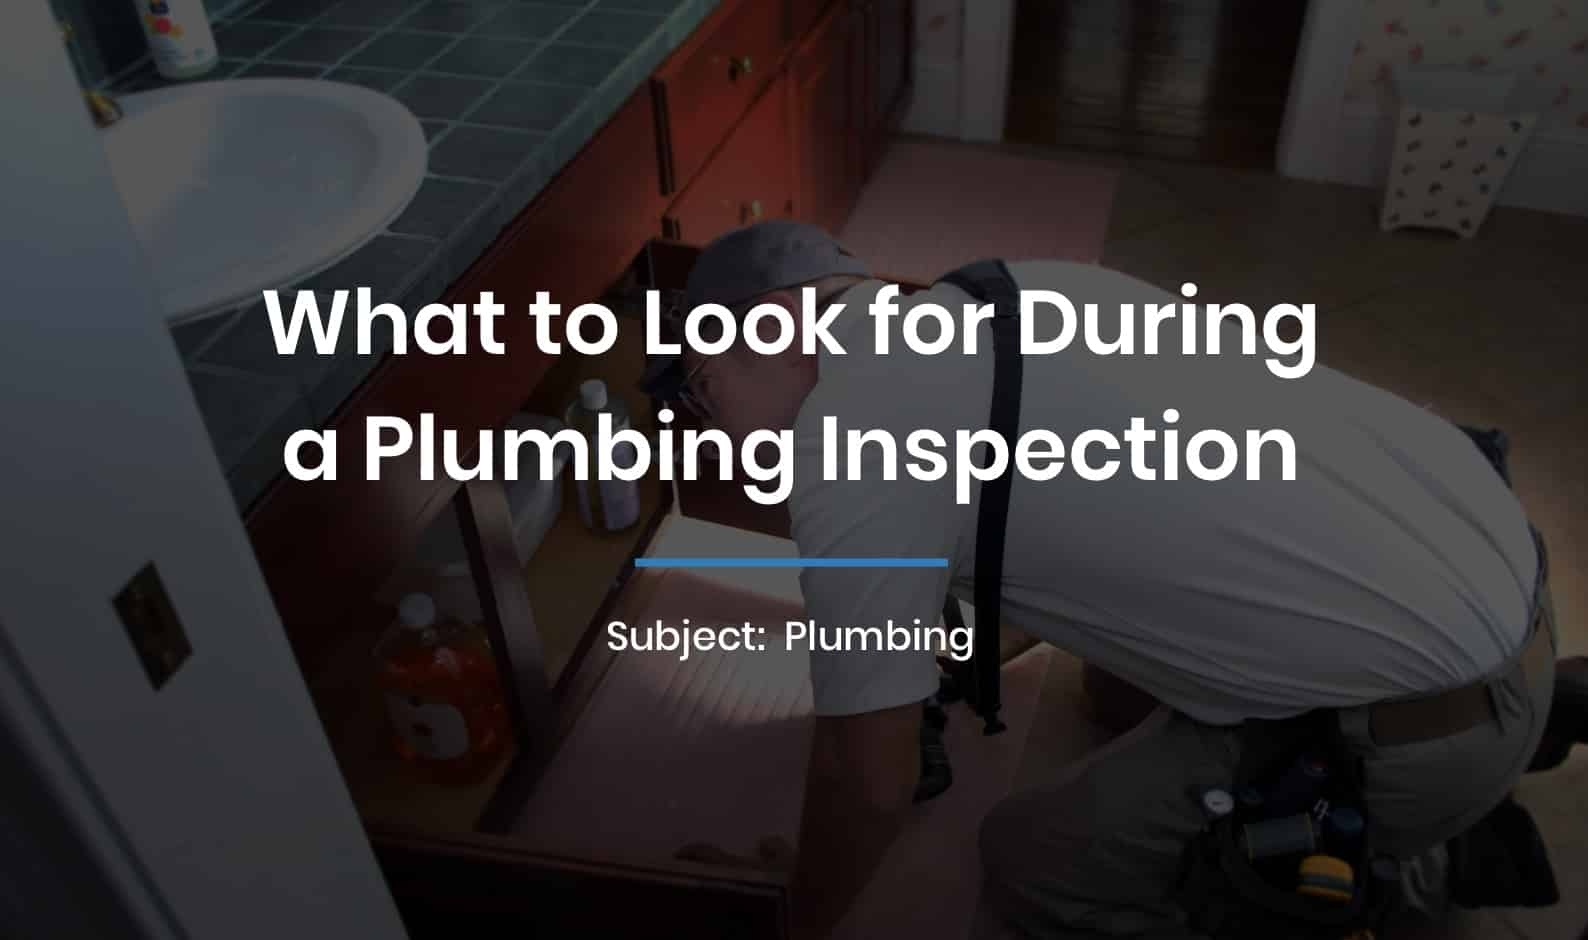 What to Look for During a Plumbing Inspection